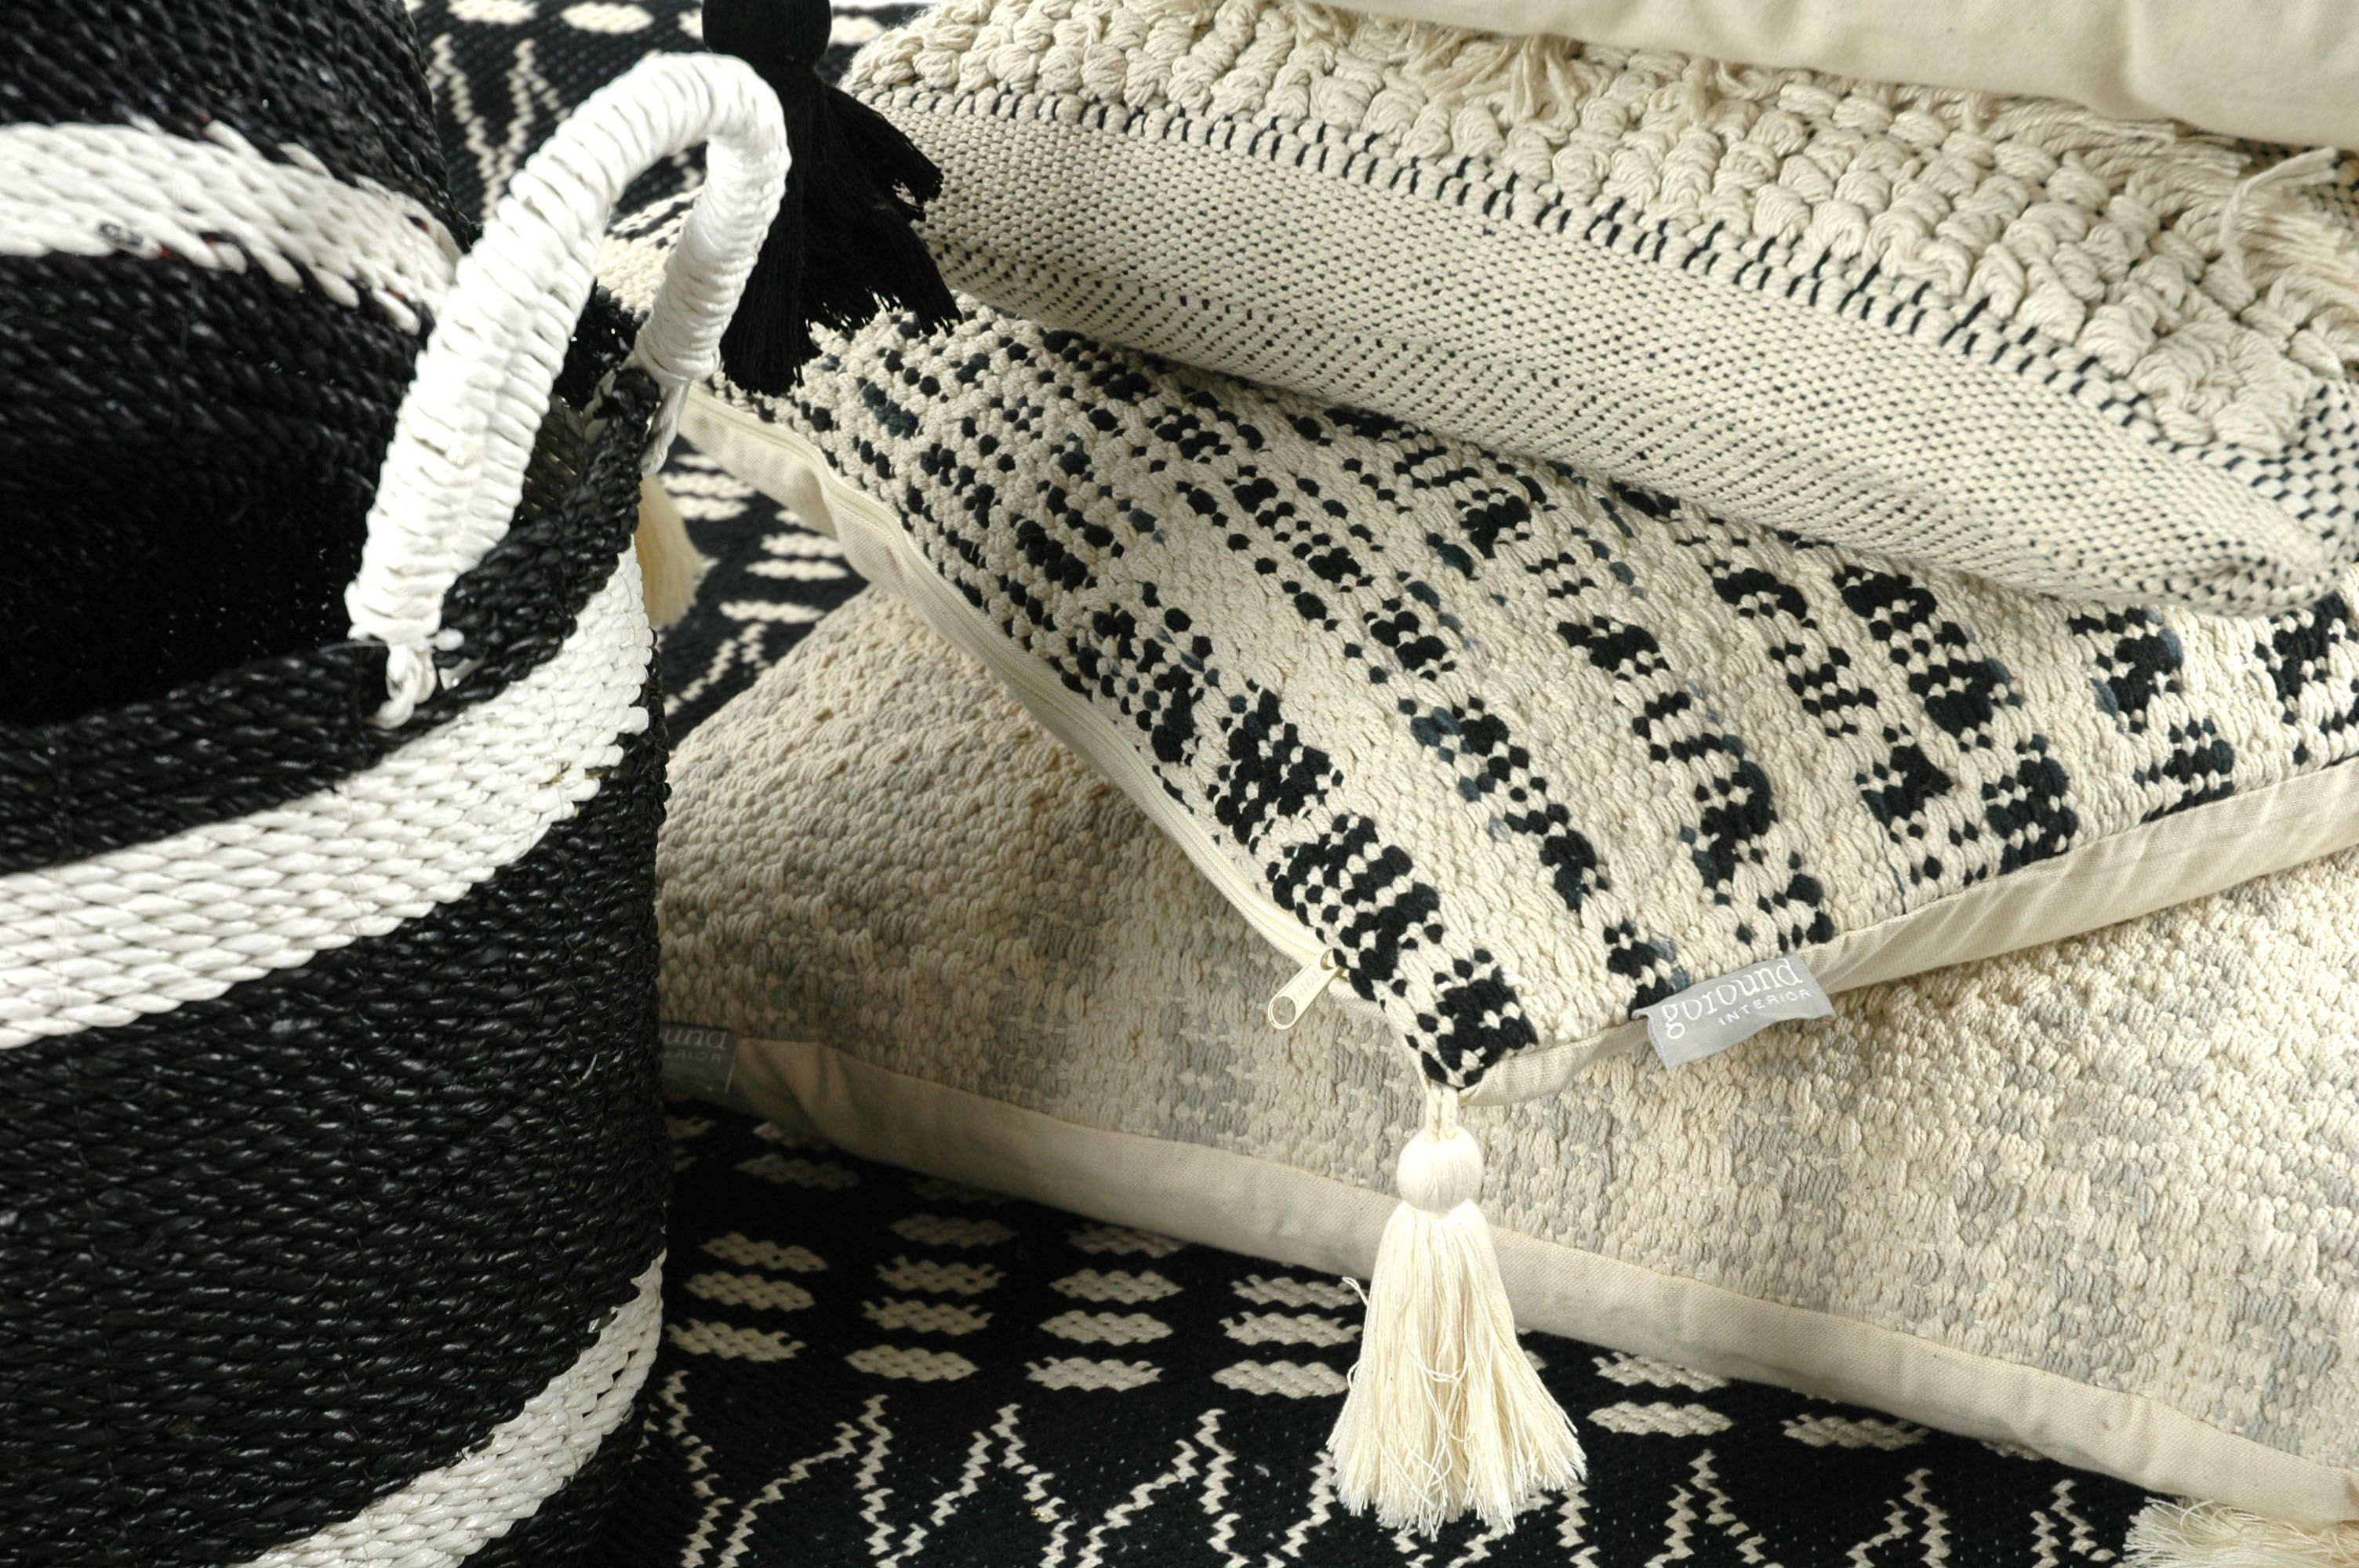 goround interior, Winter collection 2016, Black and white selection